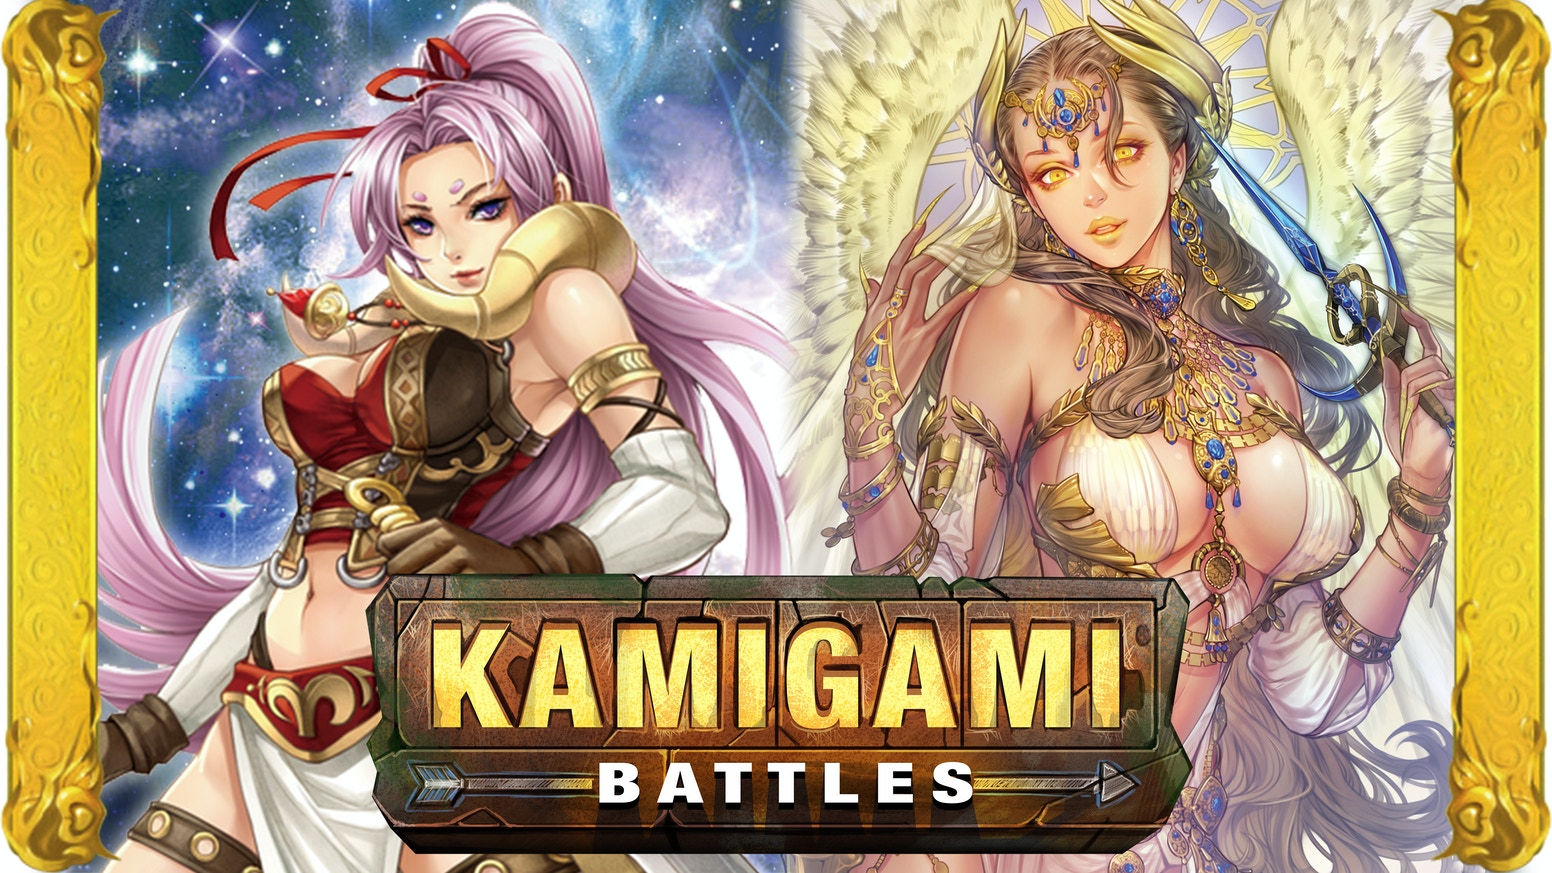 Choose a God, recruit Warriors and battle for control of the Realm in this epic PVP deck-building card game for 2-6 players!